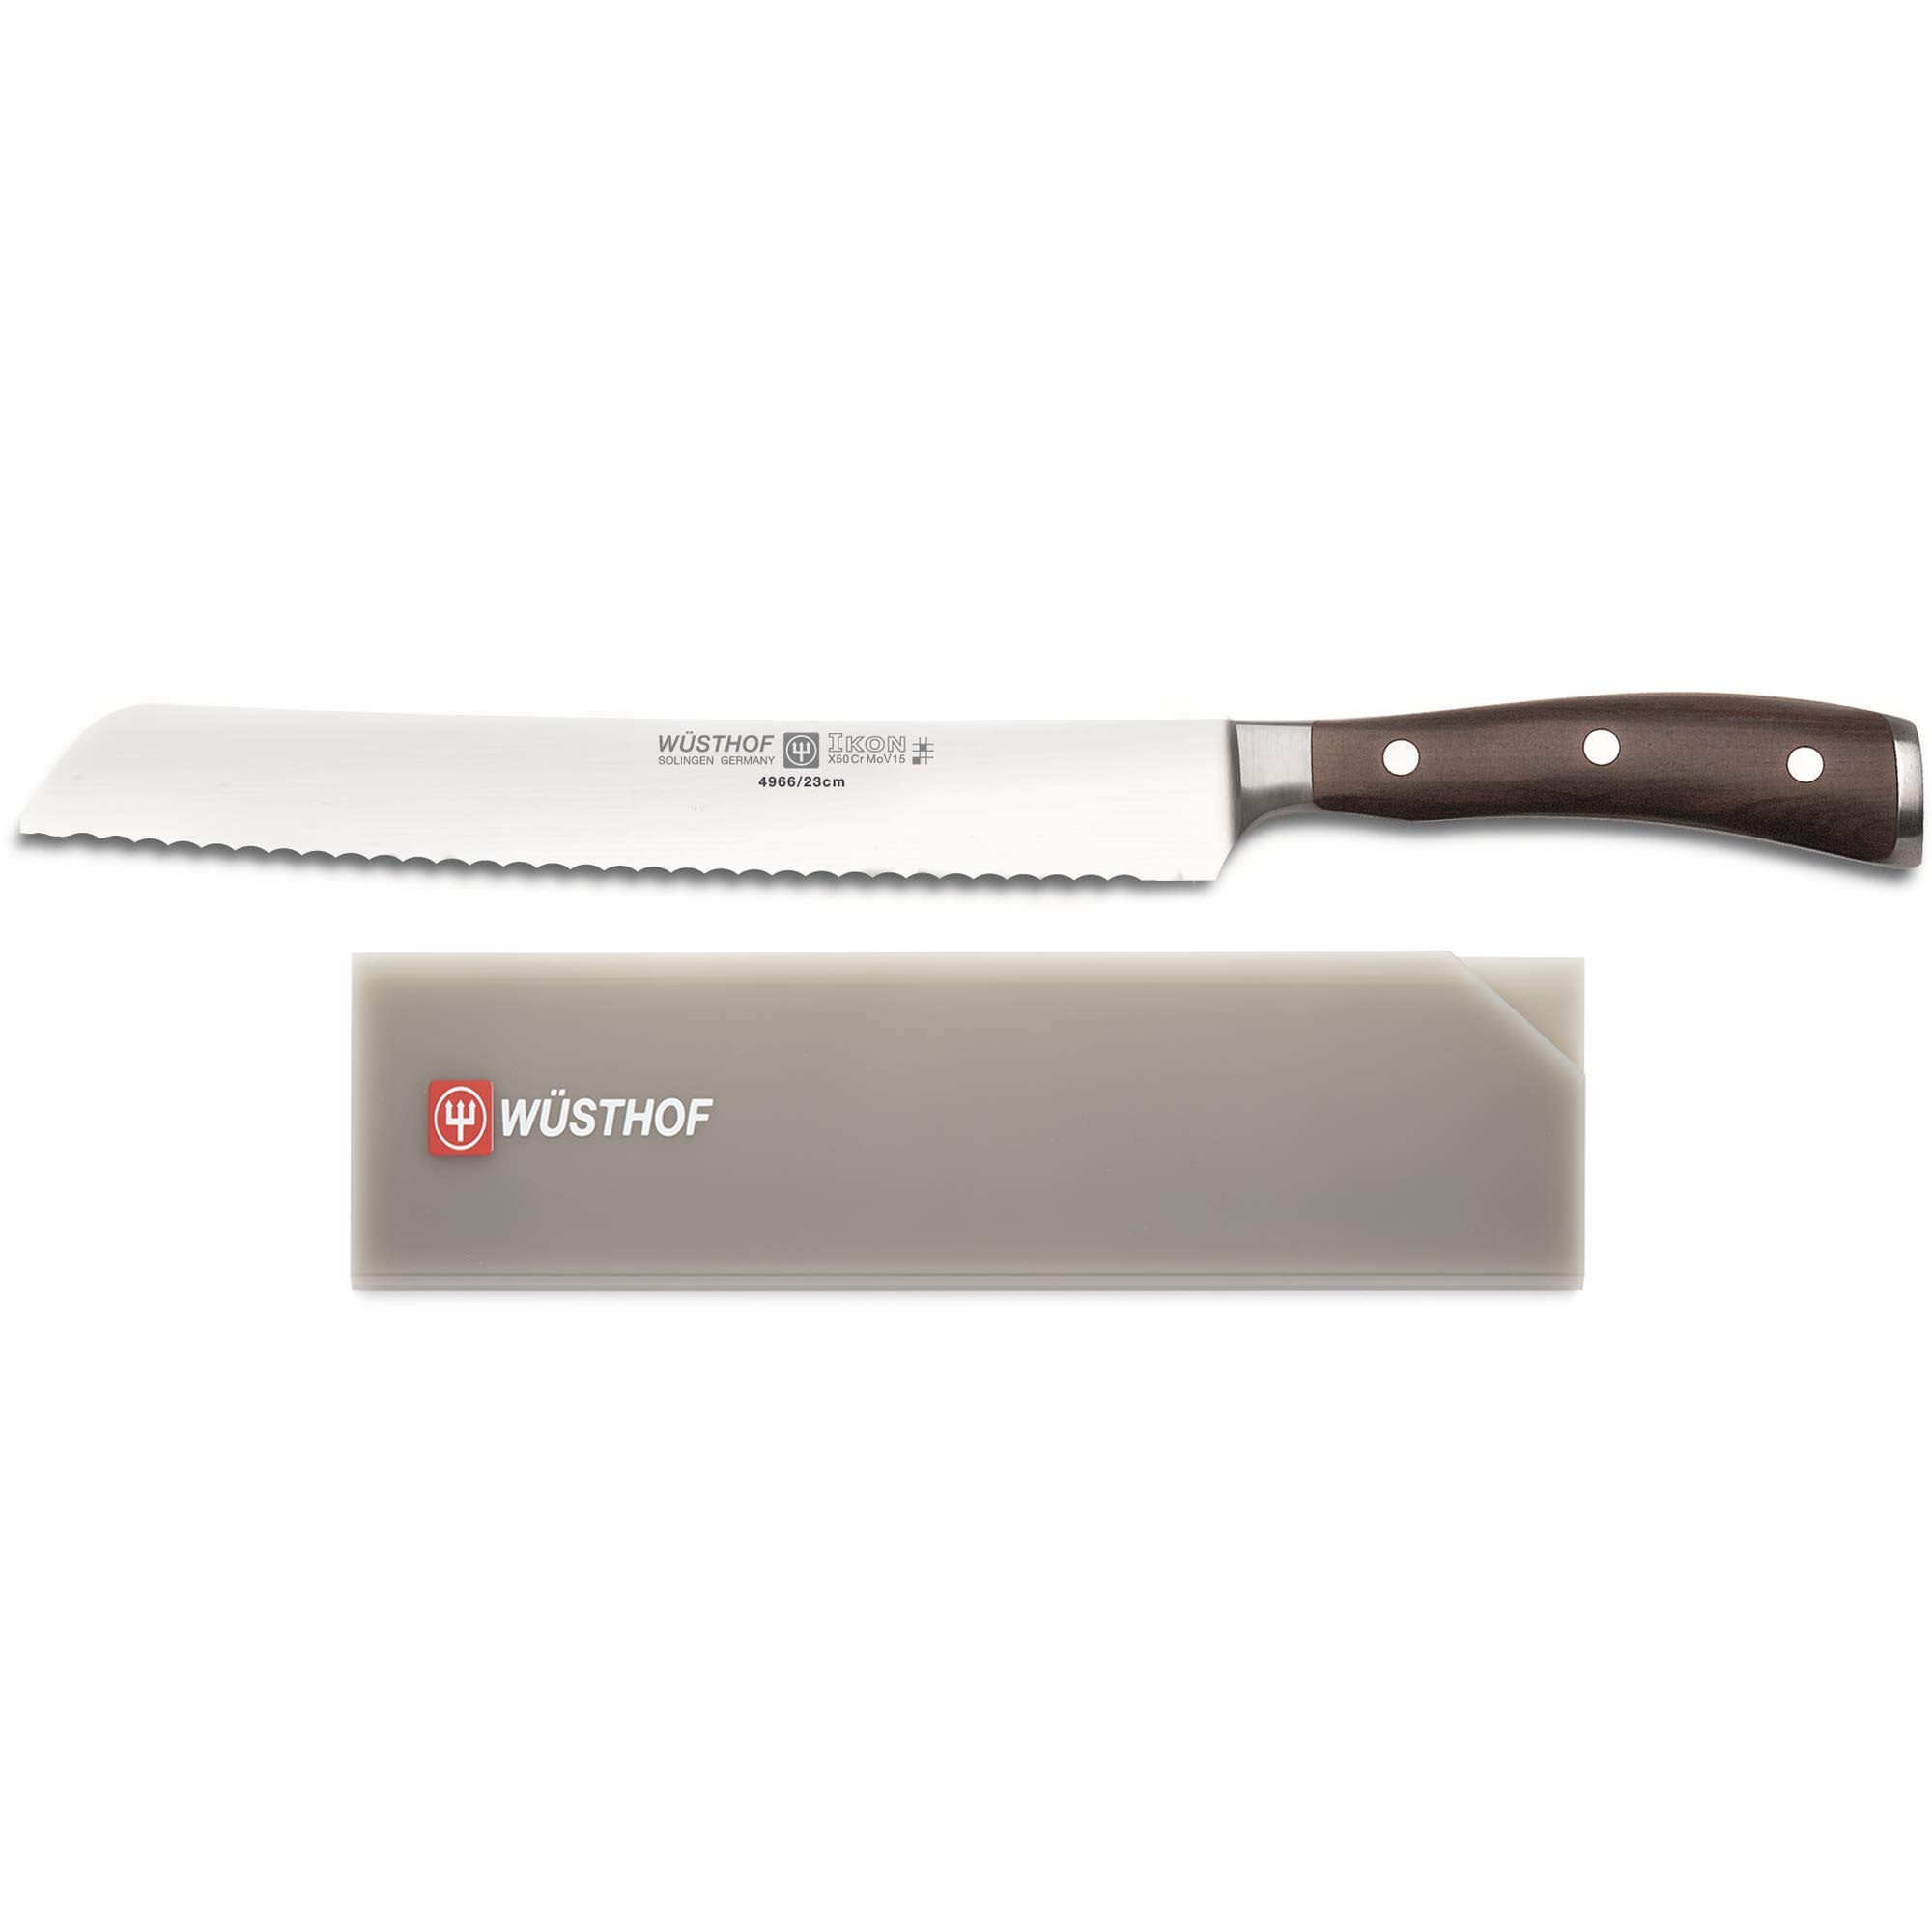 """Wusthof Ikon 9"""" Serrated Bread Knife with Blade Guard Fits Up To 10'' Cook Knife"""